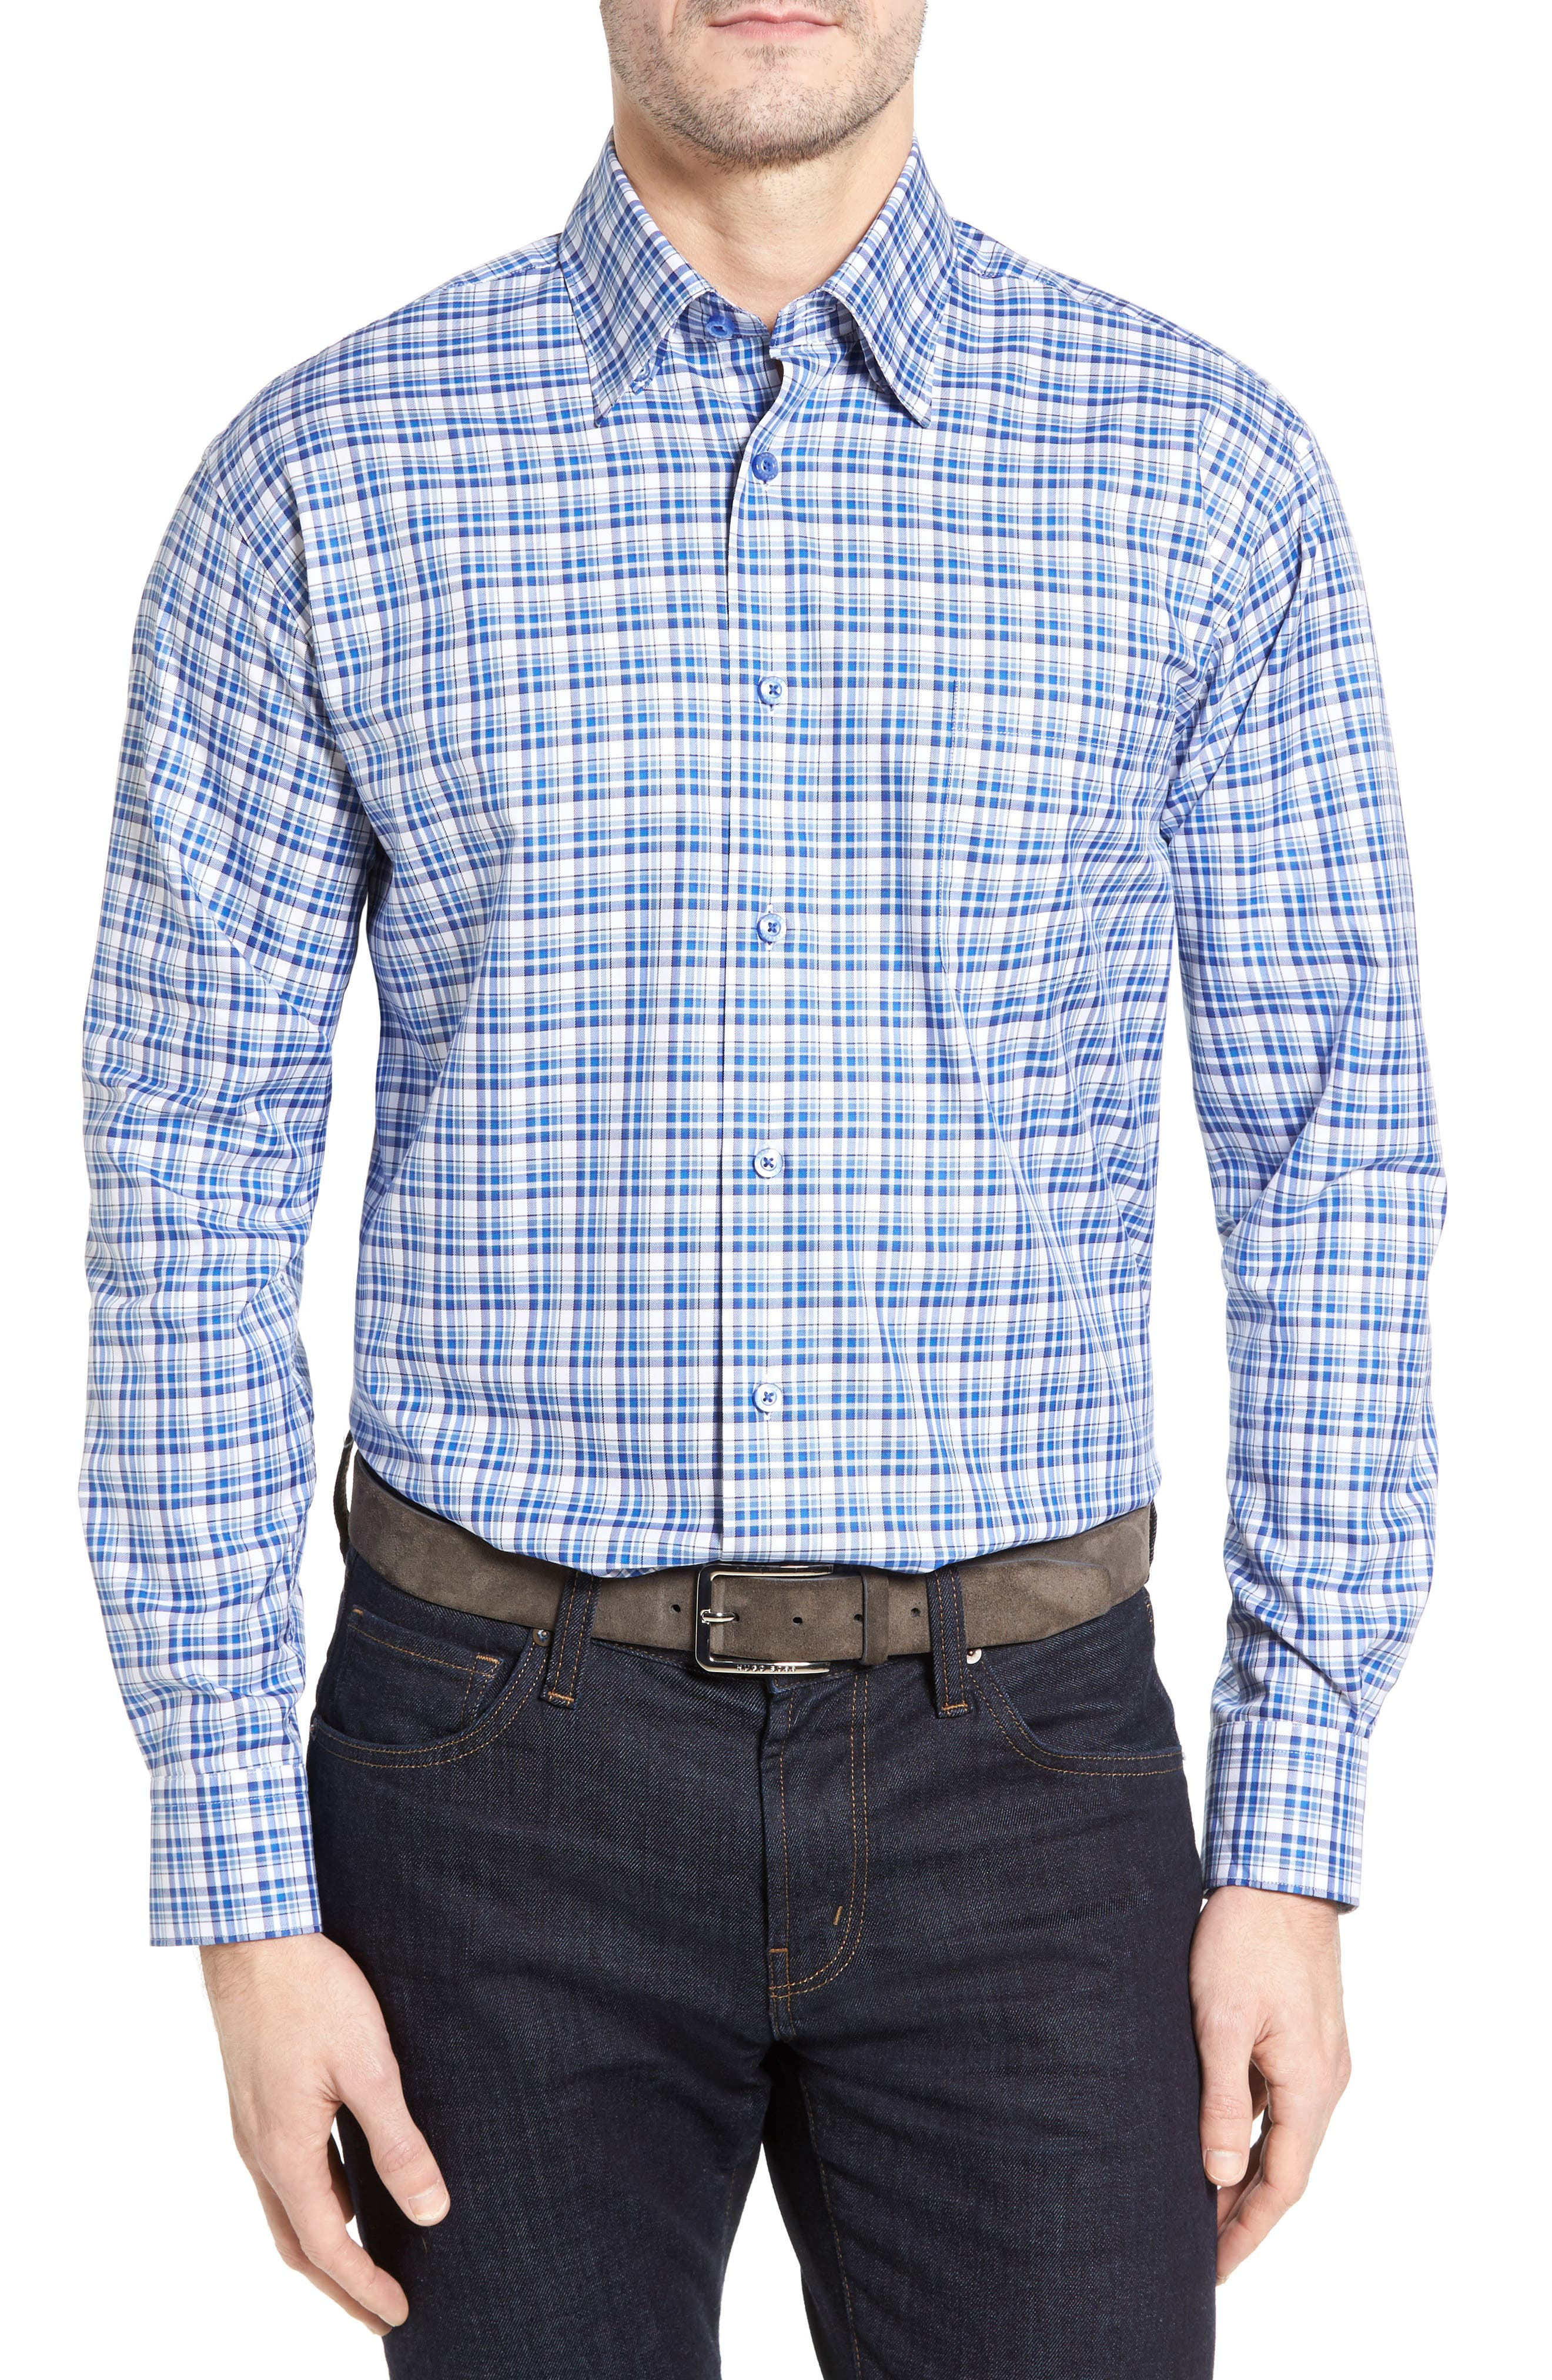 Anderson Classic Fit Plaid Micro Twill Sport Shirt,                         Main,                         color, 417